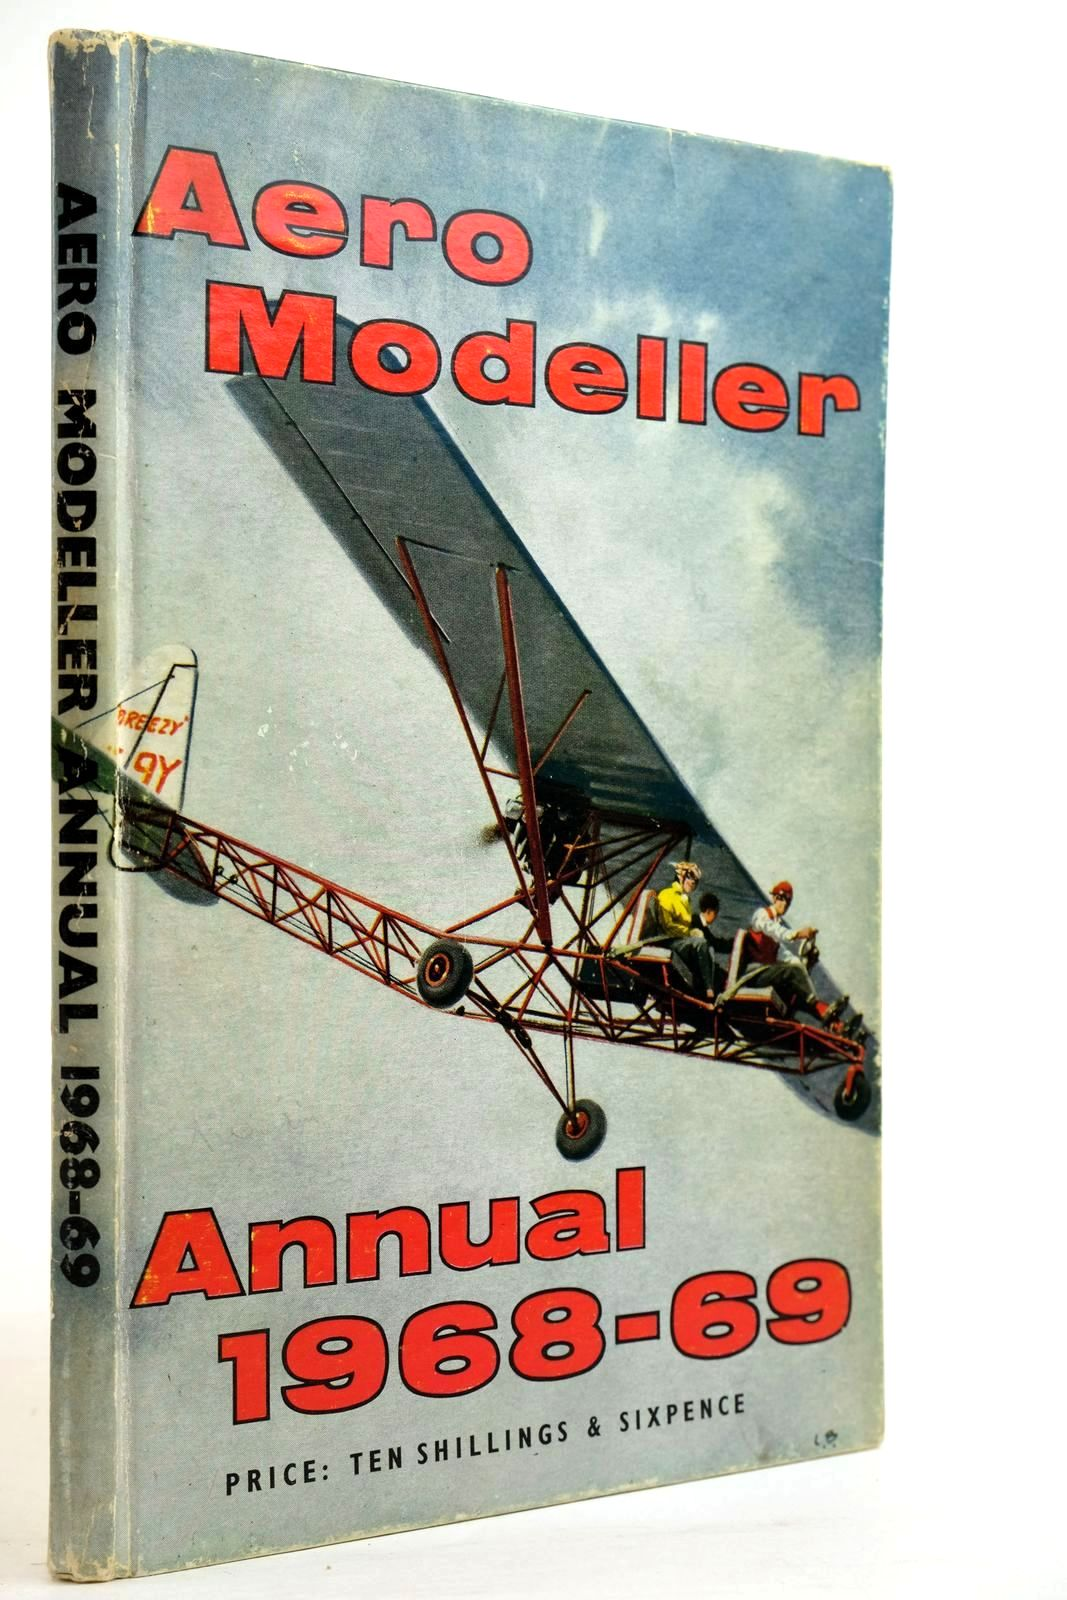 Photo of AEROMODELLER ANNUAL 1968-69- Stock Number: 2134349